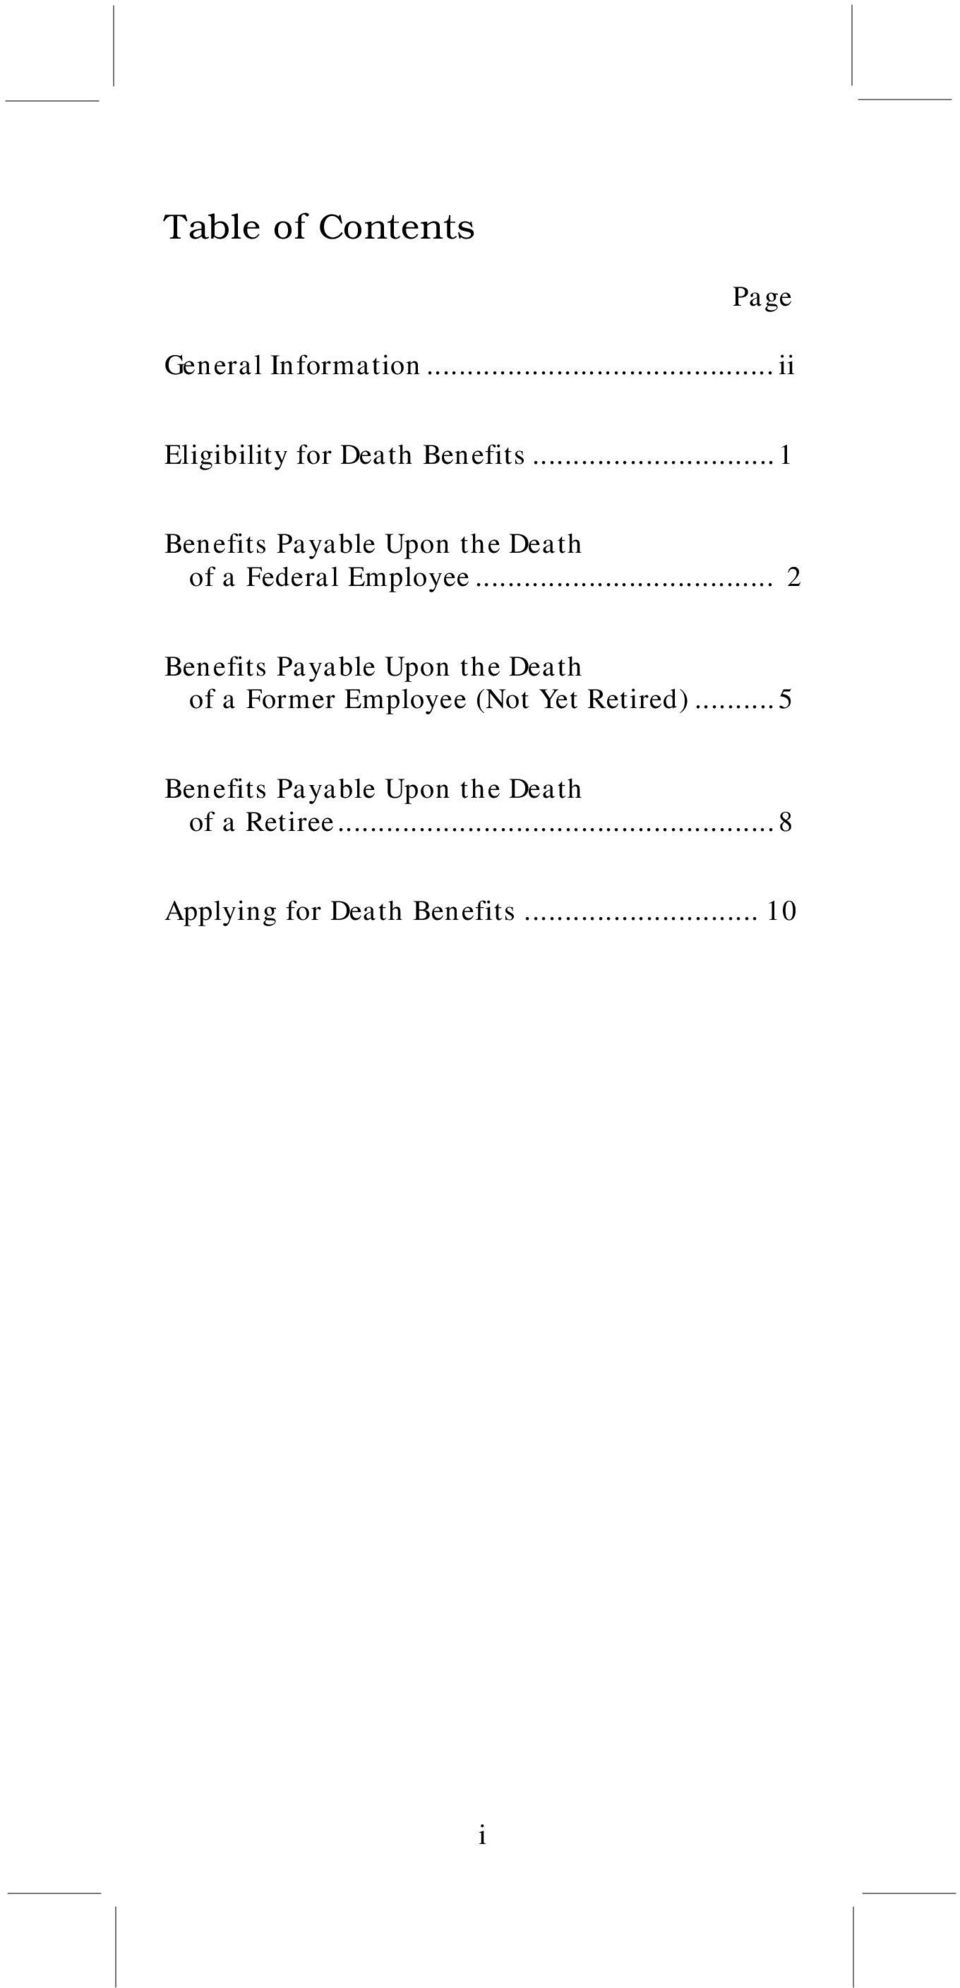 ..1 Benefits Payable Upon the Death of a Federal Employee.